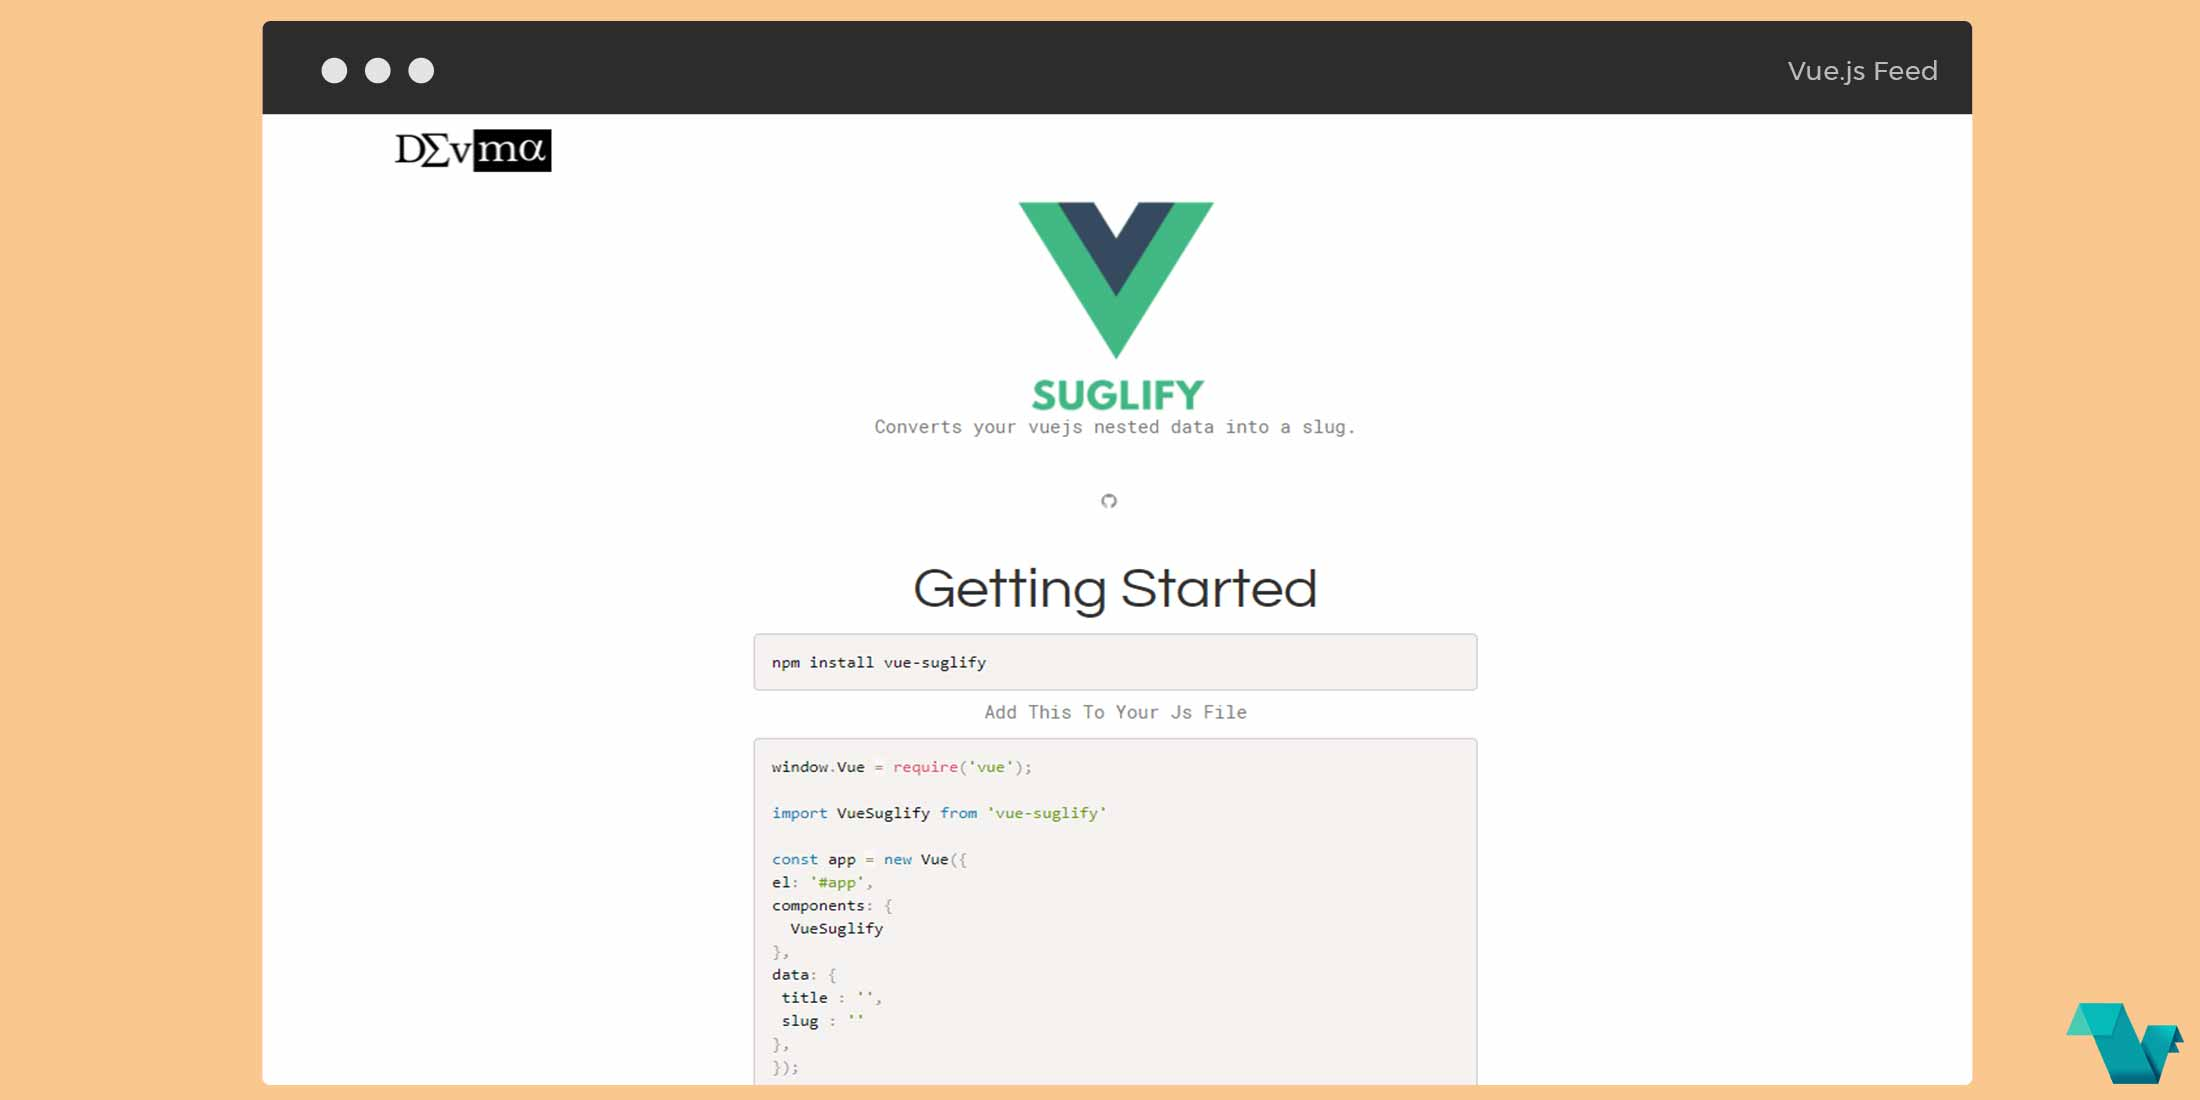 Convert your Vue js nested data into slugs - Vue js Feed